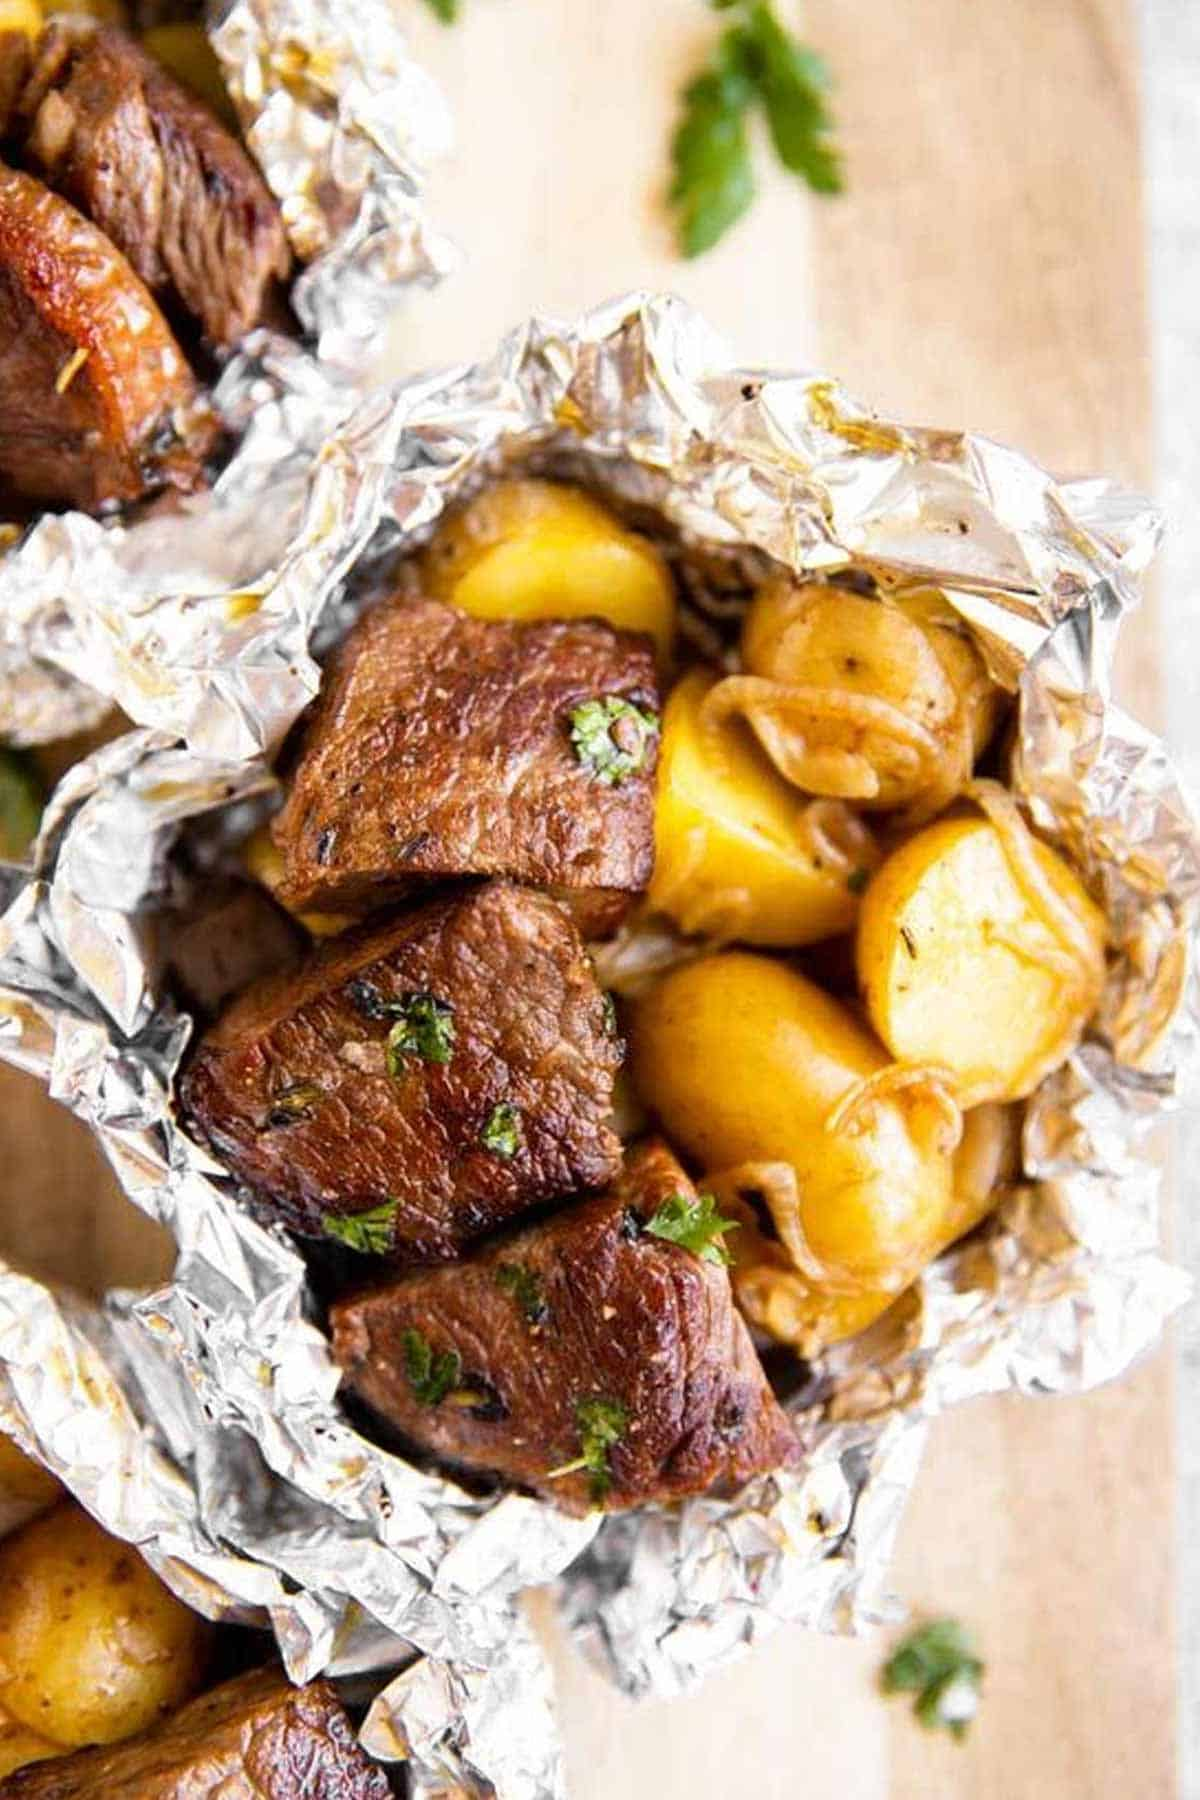 overhead view of a steak and potato foil packet on a wooden chopping board